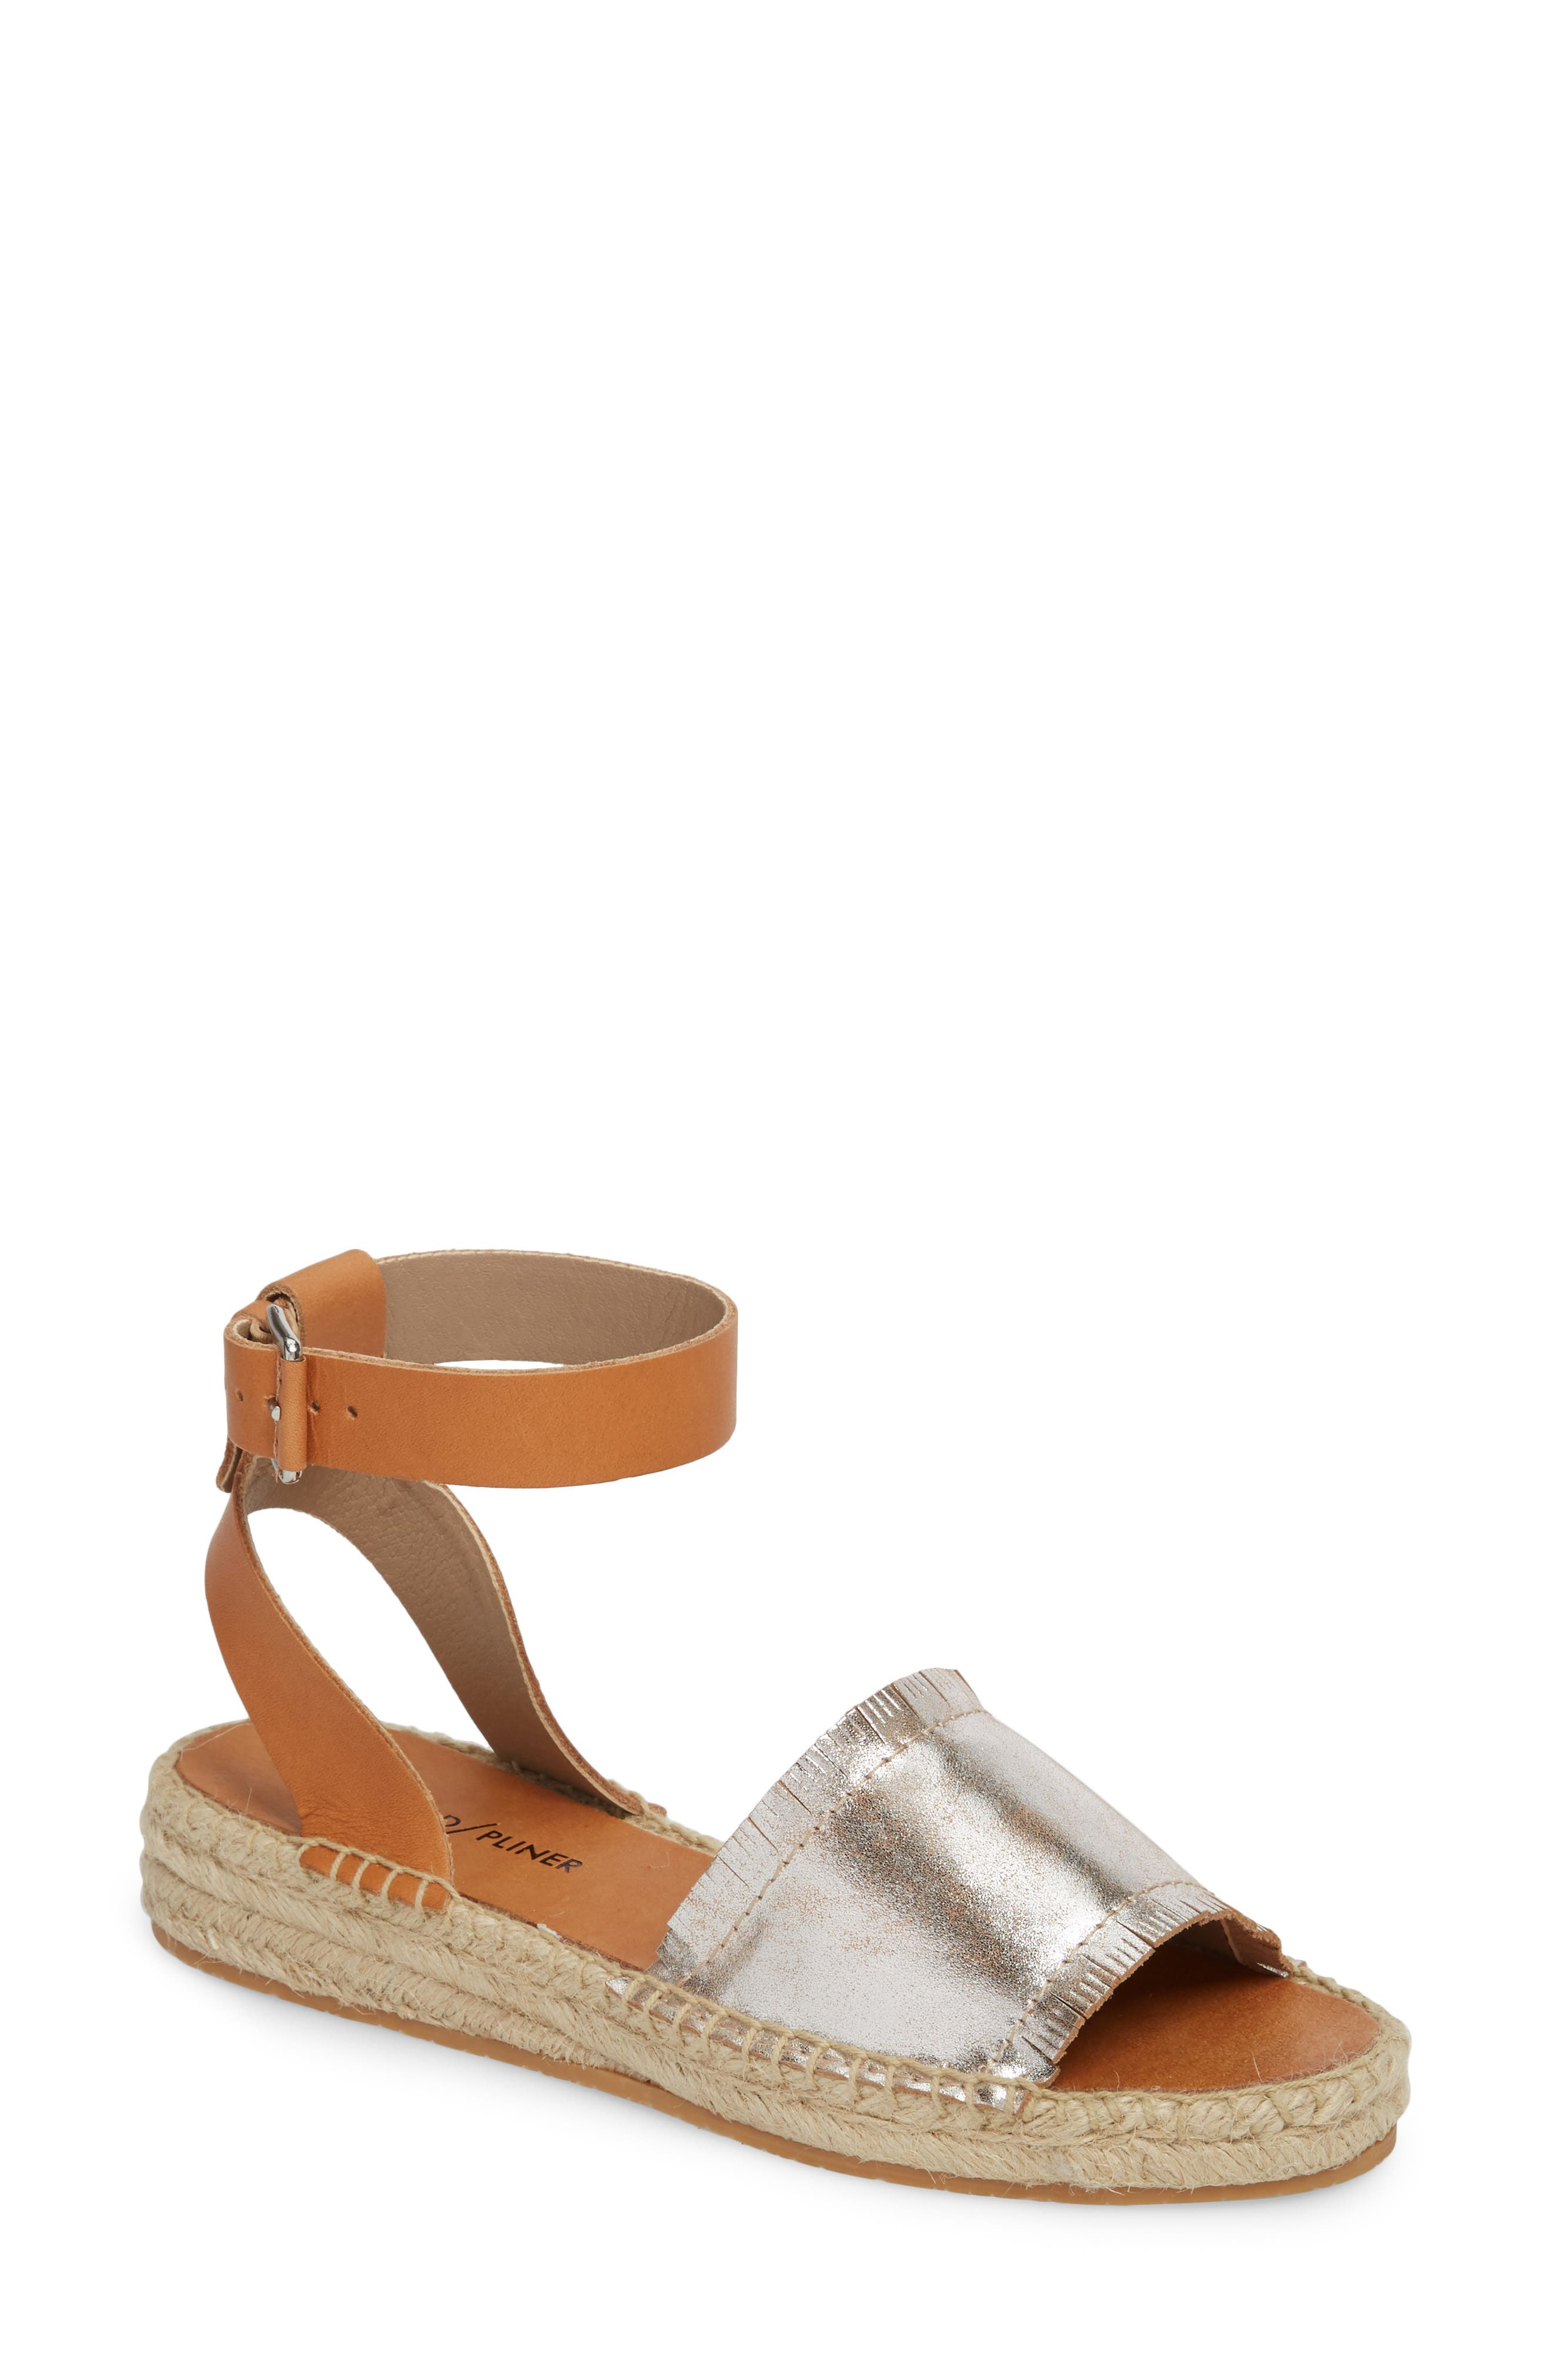 Rowen Espadrille Sandal,                         Main,                         color, Silver Leather